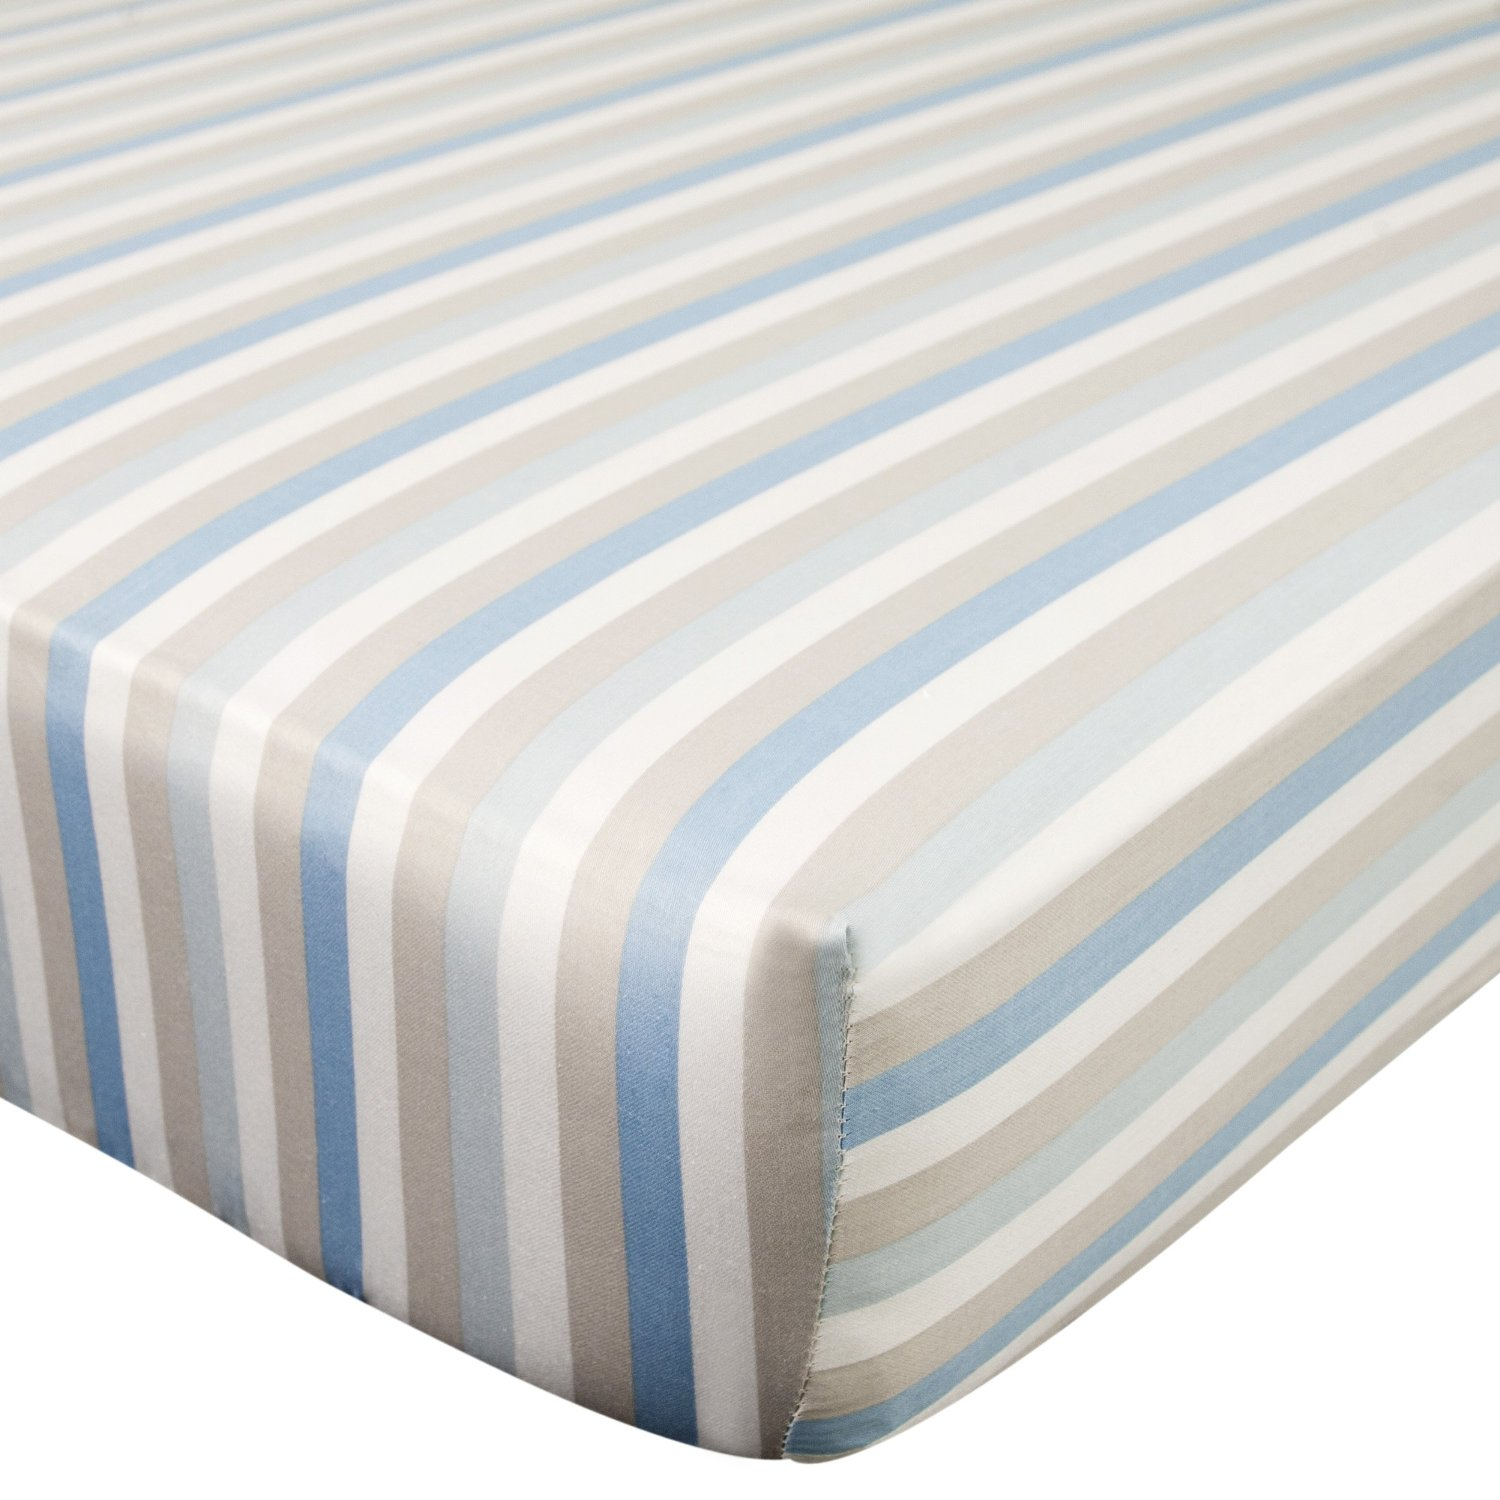 Carter's Cotton Crib Fitted Sheet, Blue White Gray Stripes